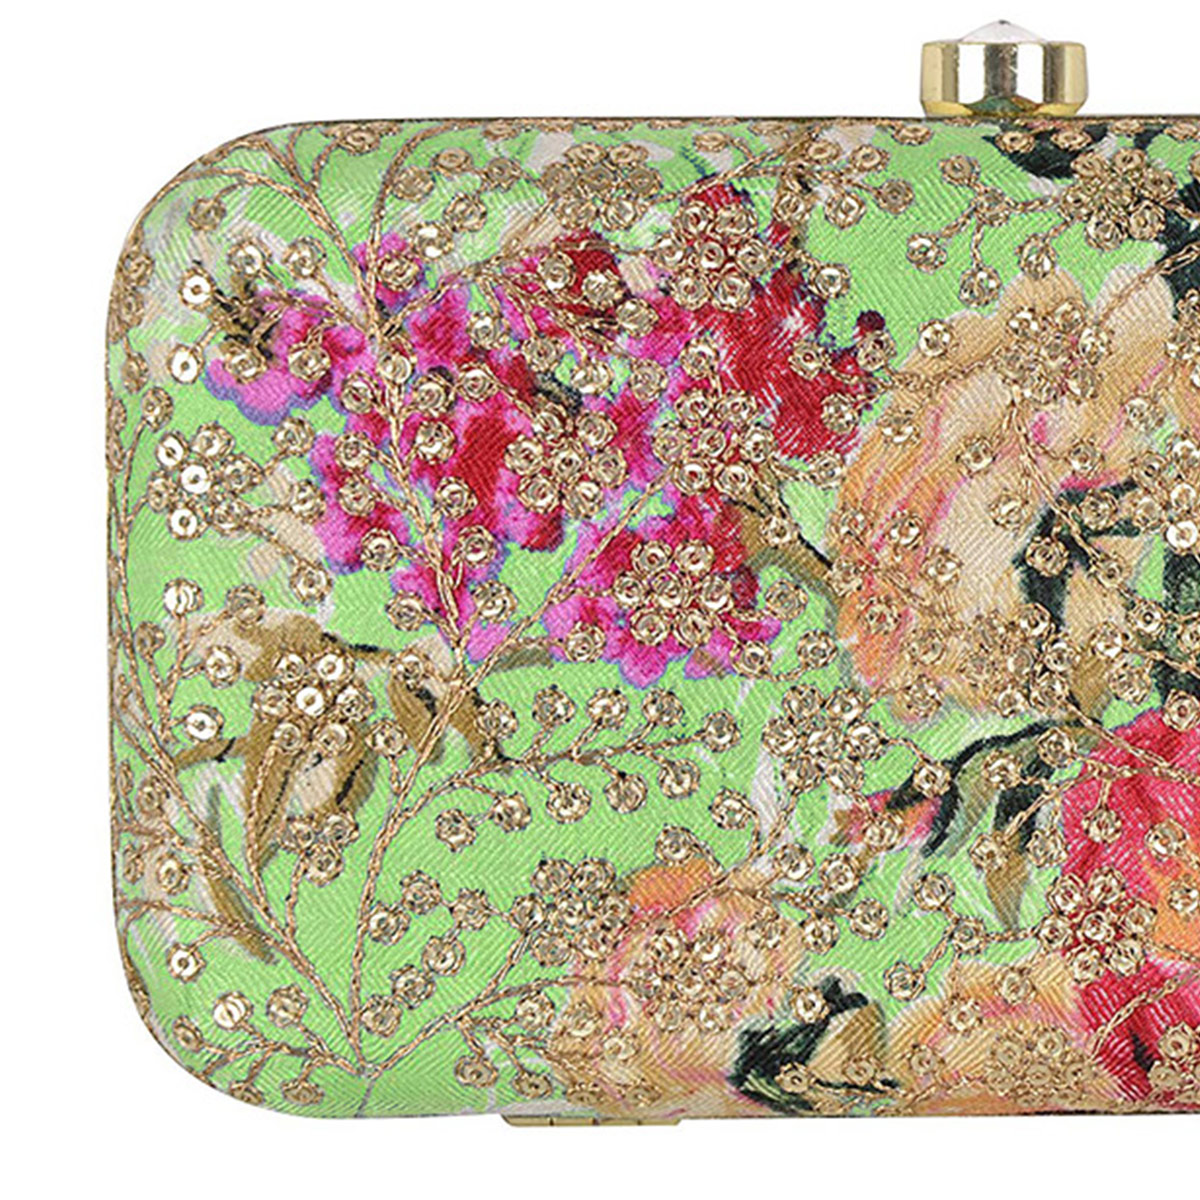 Opulent Green Colored Handcrafted Partywear Sequin Embroidered Clutch